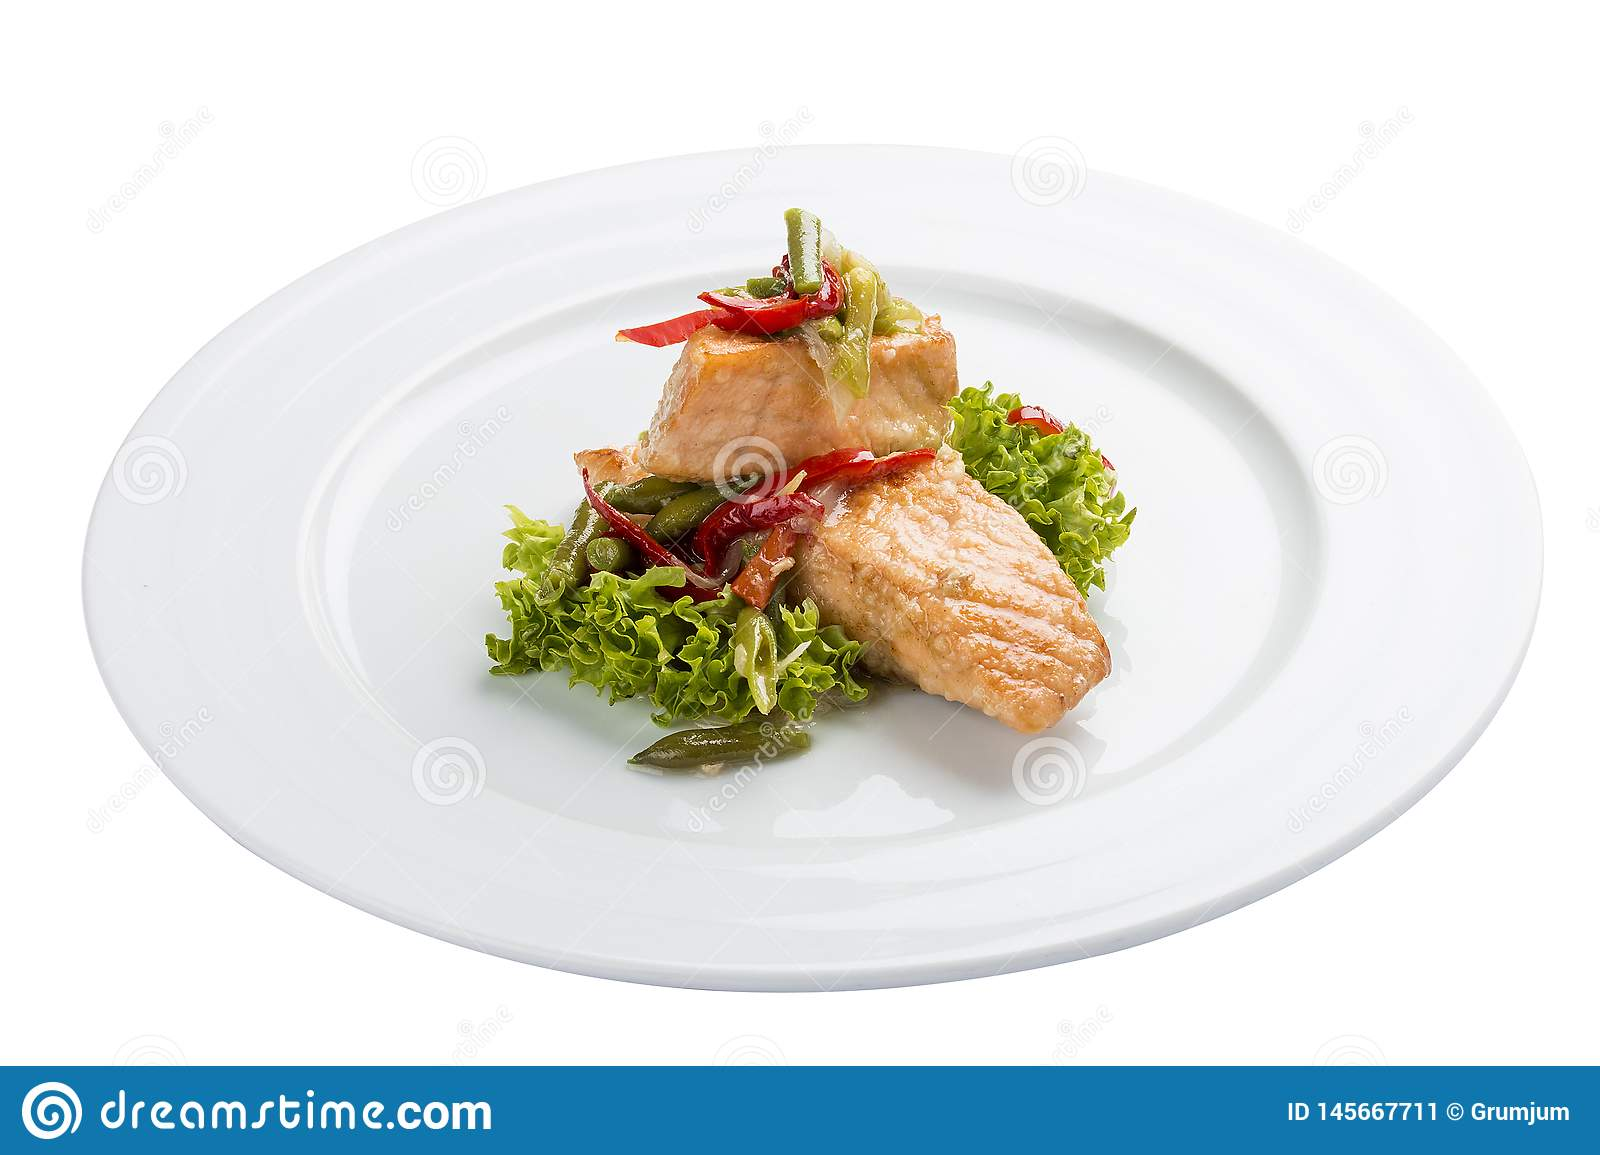 Fillet of baked salmon with salad.